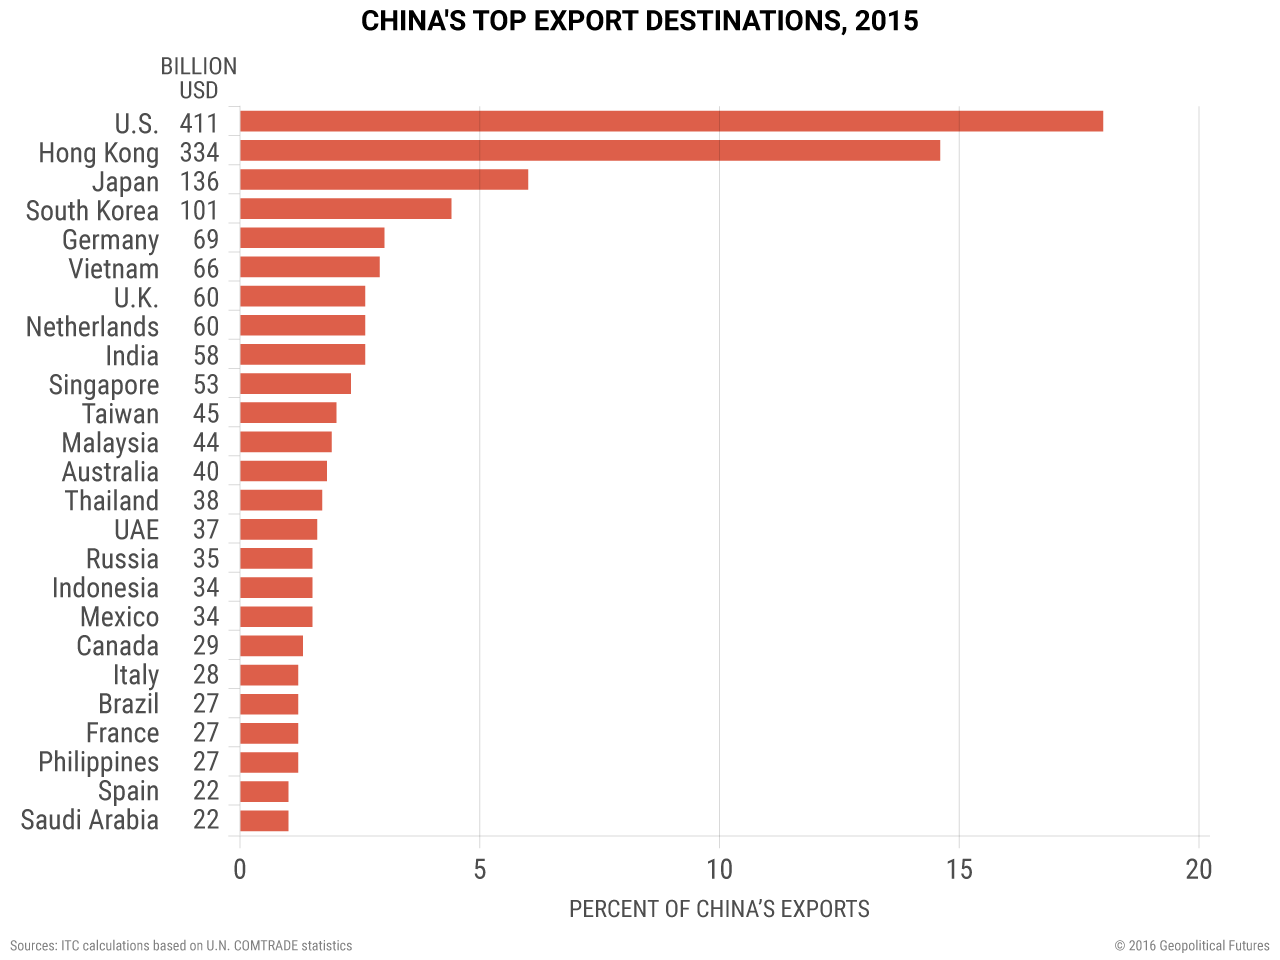 China's Top Export Destinations, 2015